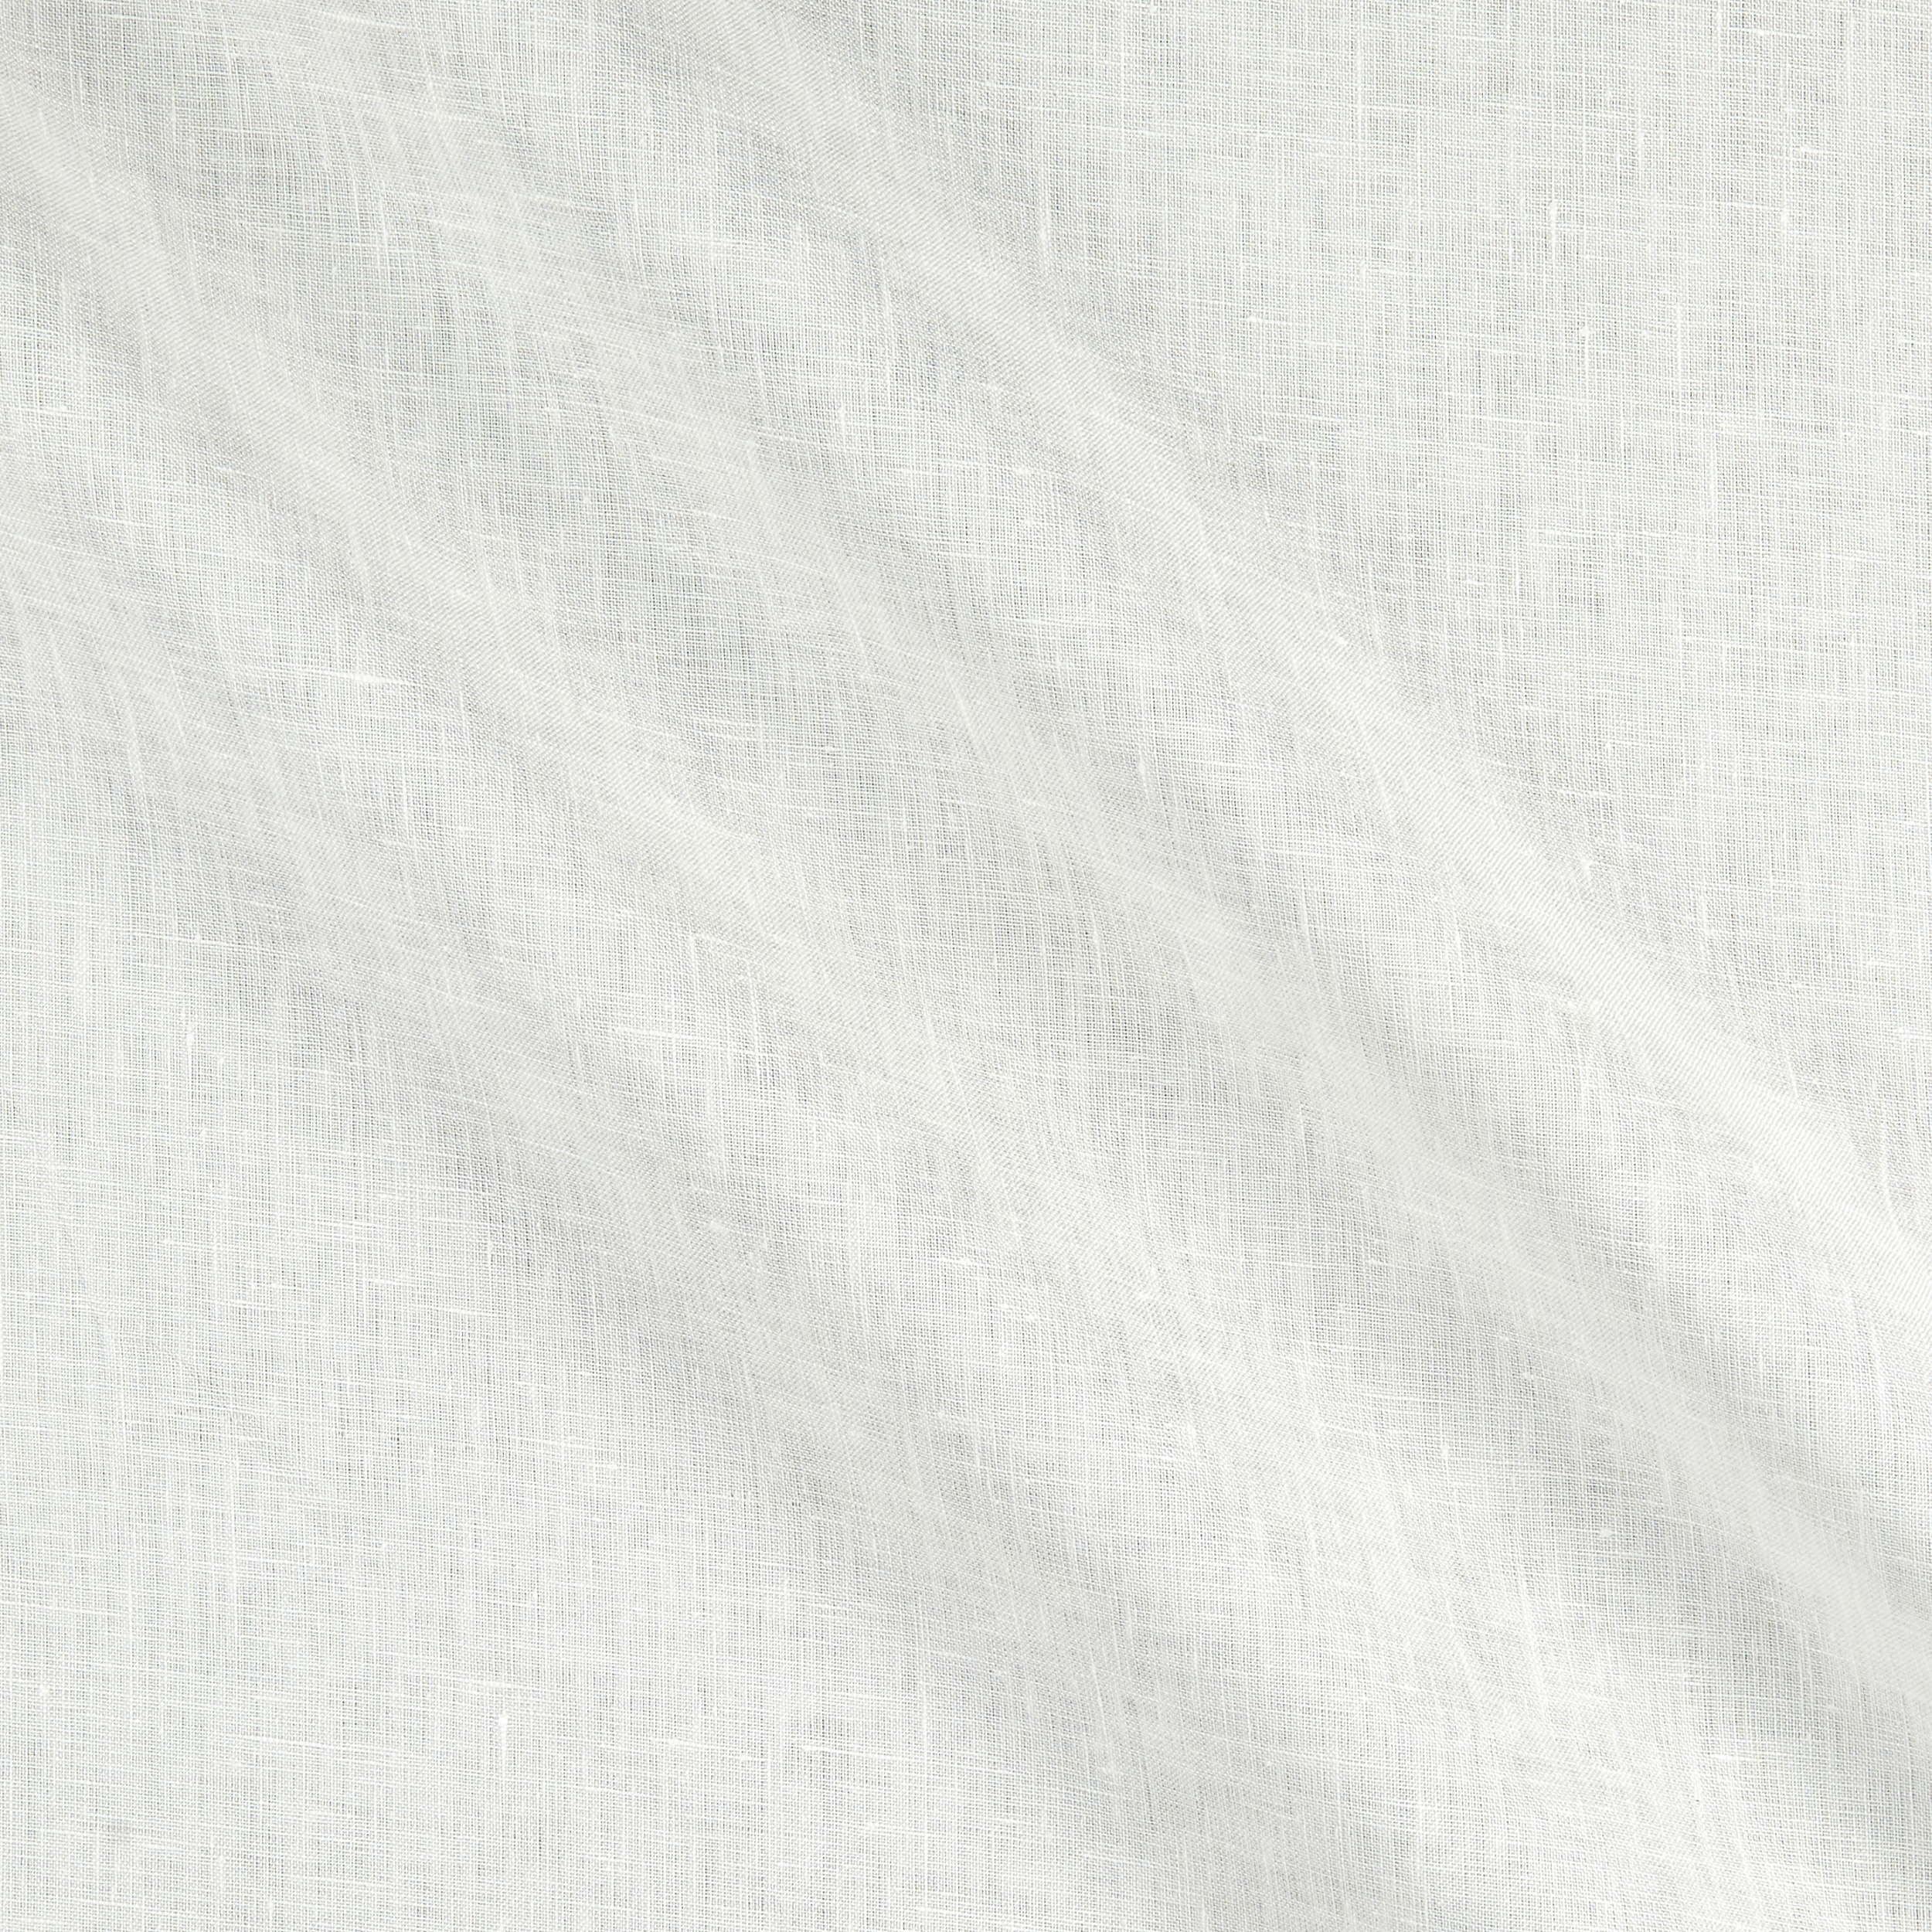 Image of 100% Linen 4.5 oz White Fabric